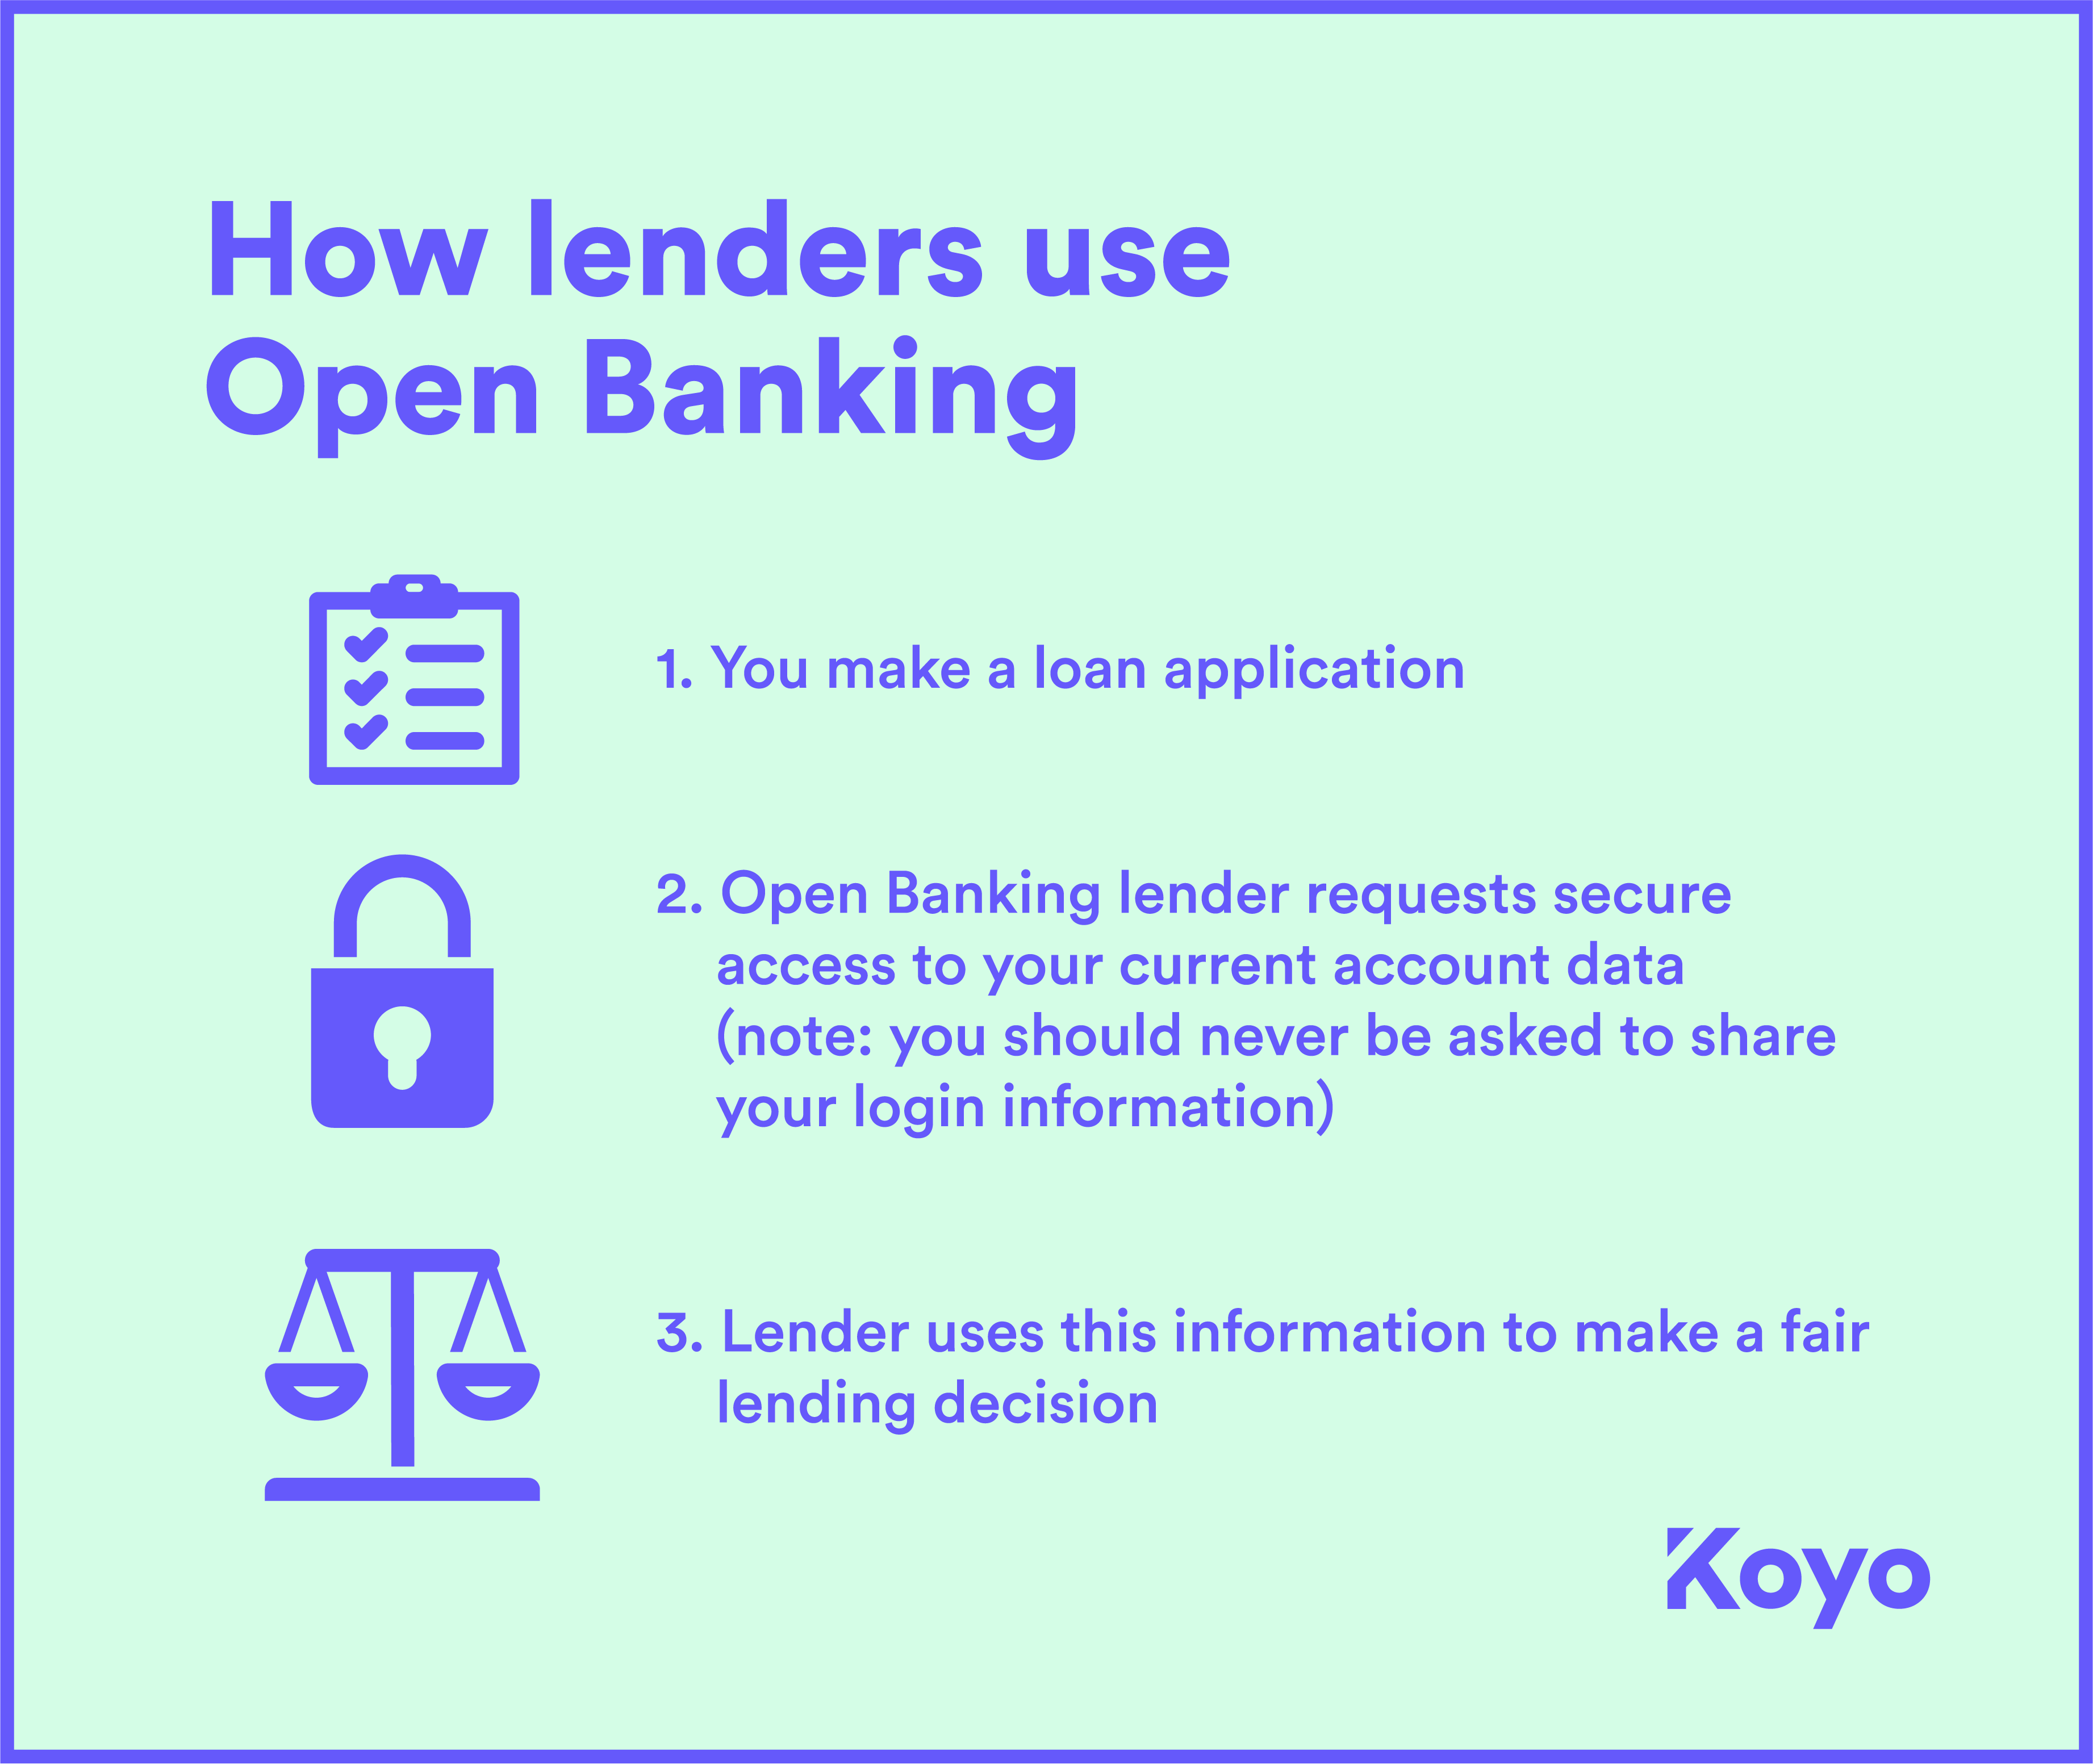 a visual guide to how Open Banking could help you to get a home improvement loan even with a bad credit score.